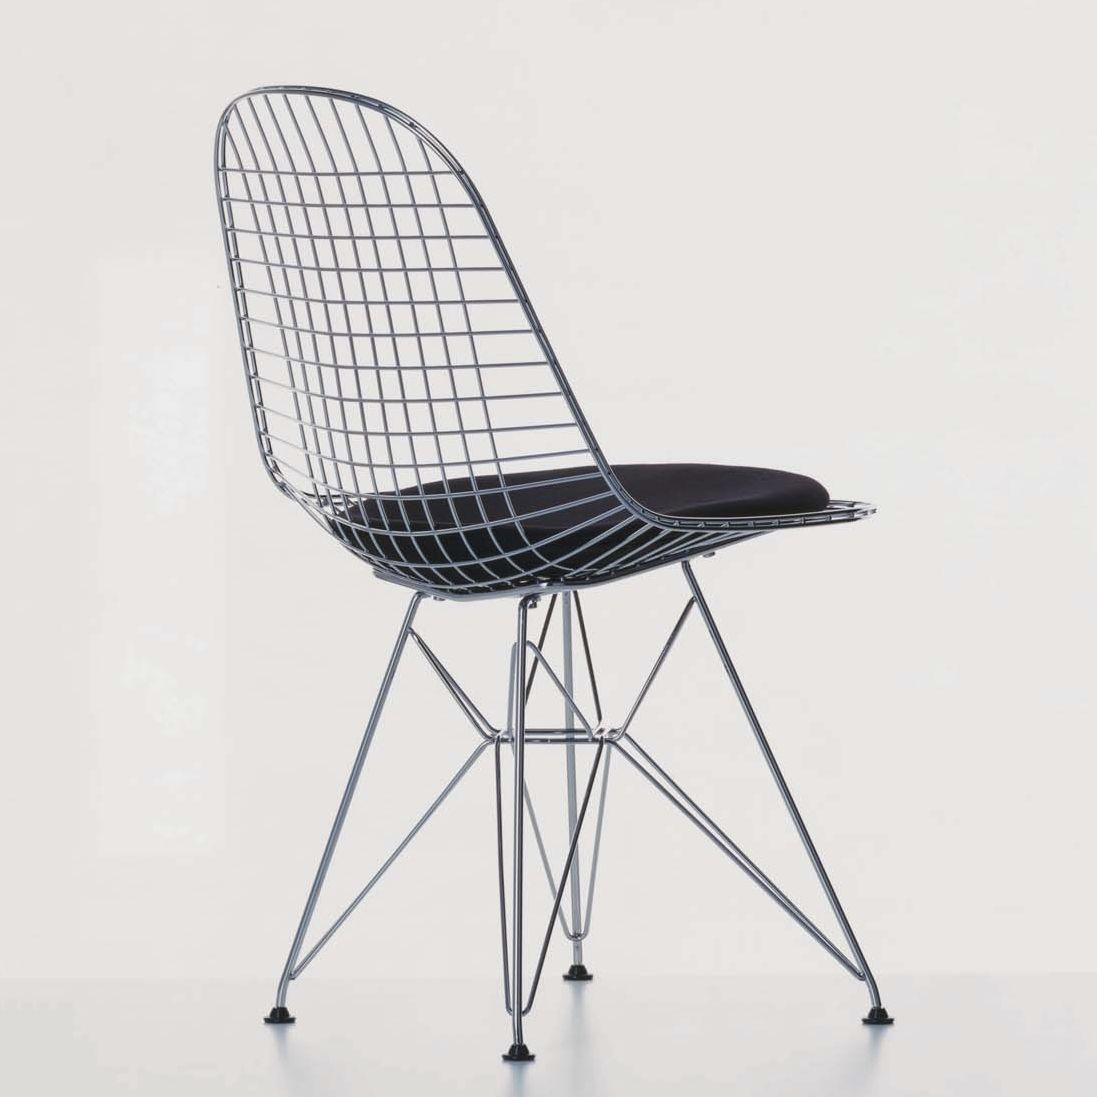 Contemporary metal chair by Charles & Ray Eames - WIRE CHAIR : DKR ...